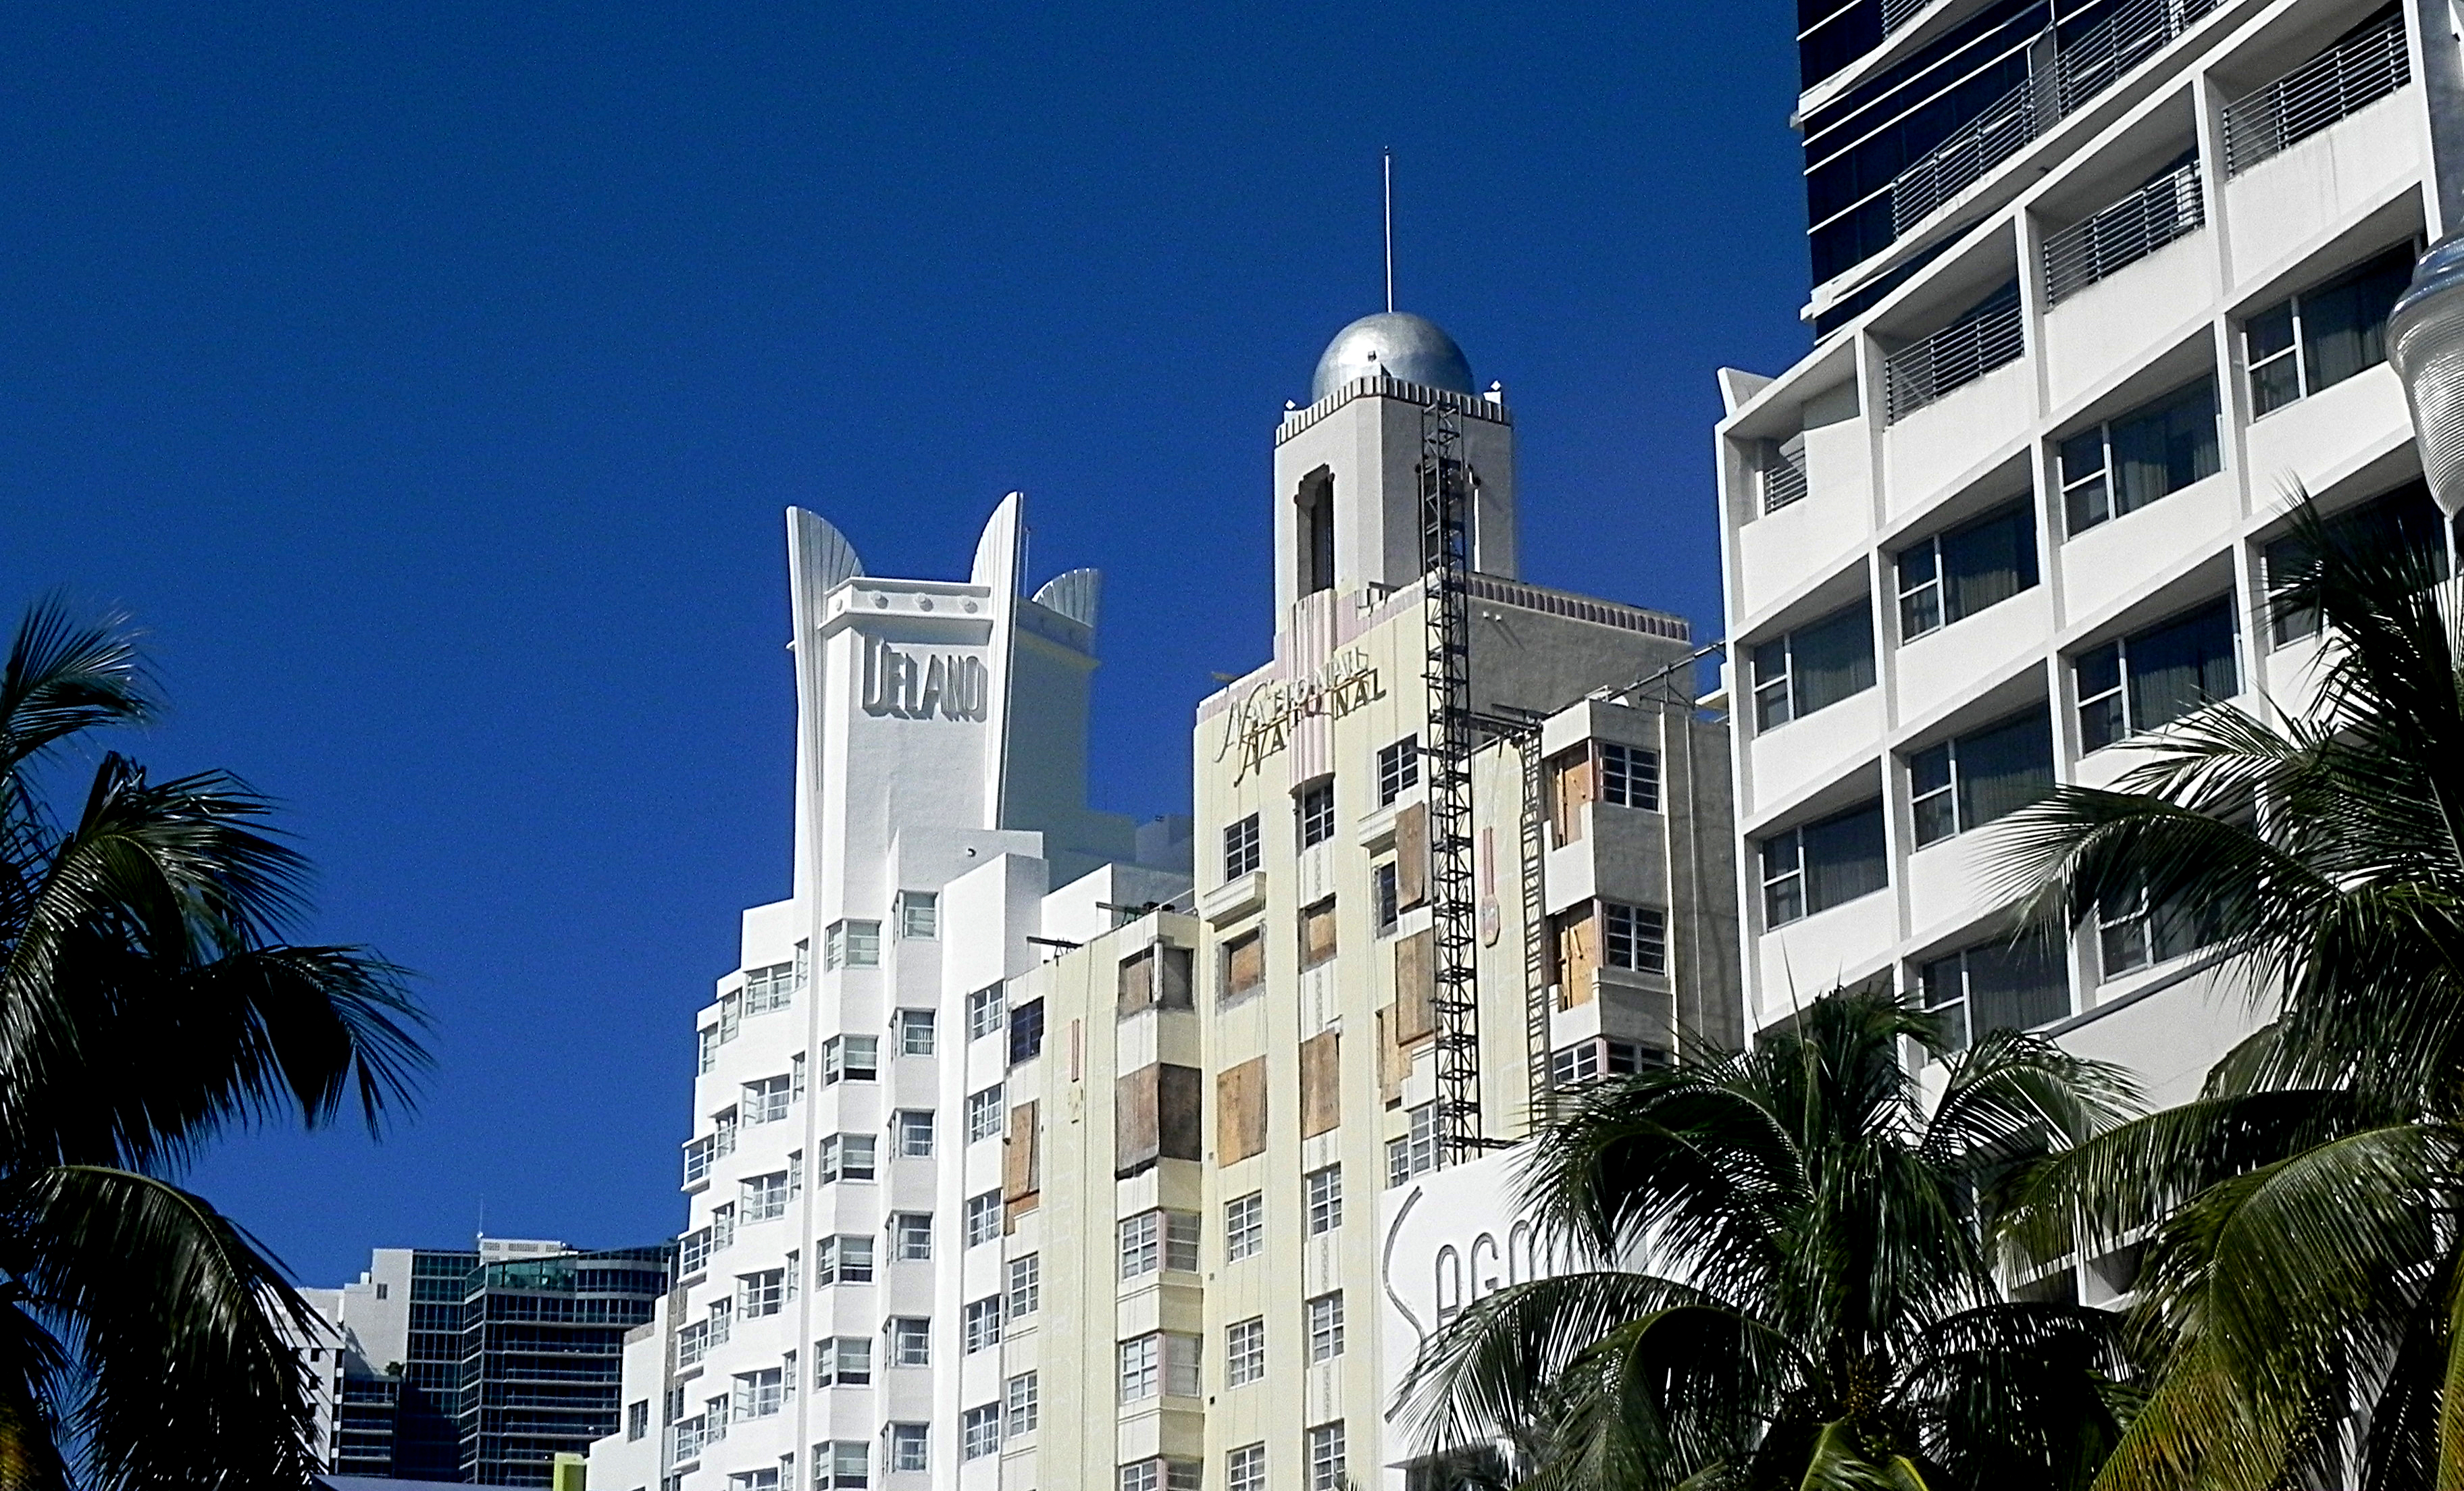 The Delano South Beach